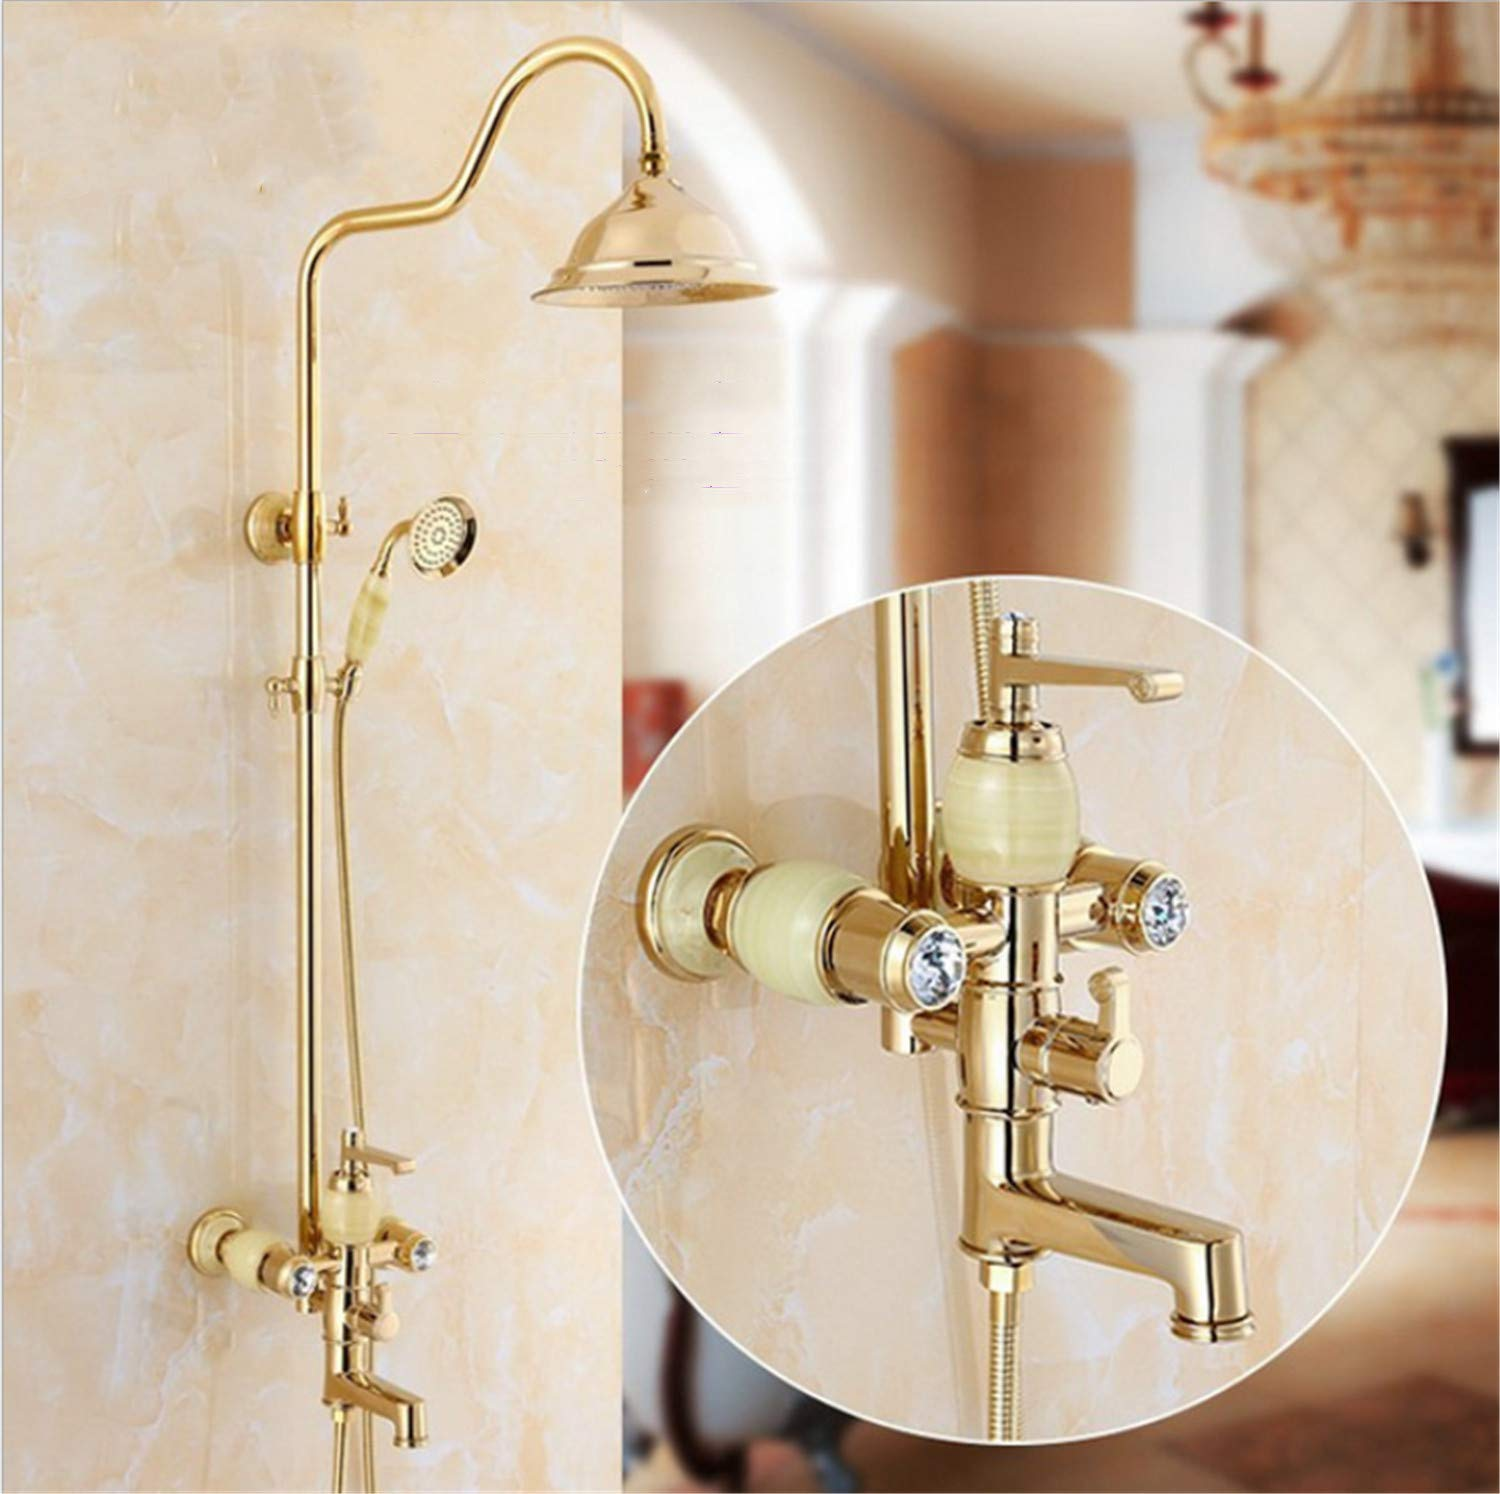 UNIQUE-F Bathroom Antique Shower Multi-Function Suit Copper Hot and Cold Water Rust Anti-scalding Telescopic Free Adjustment 2 Styles